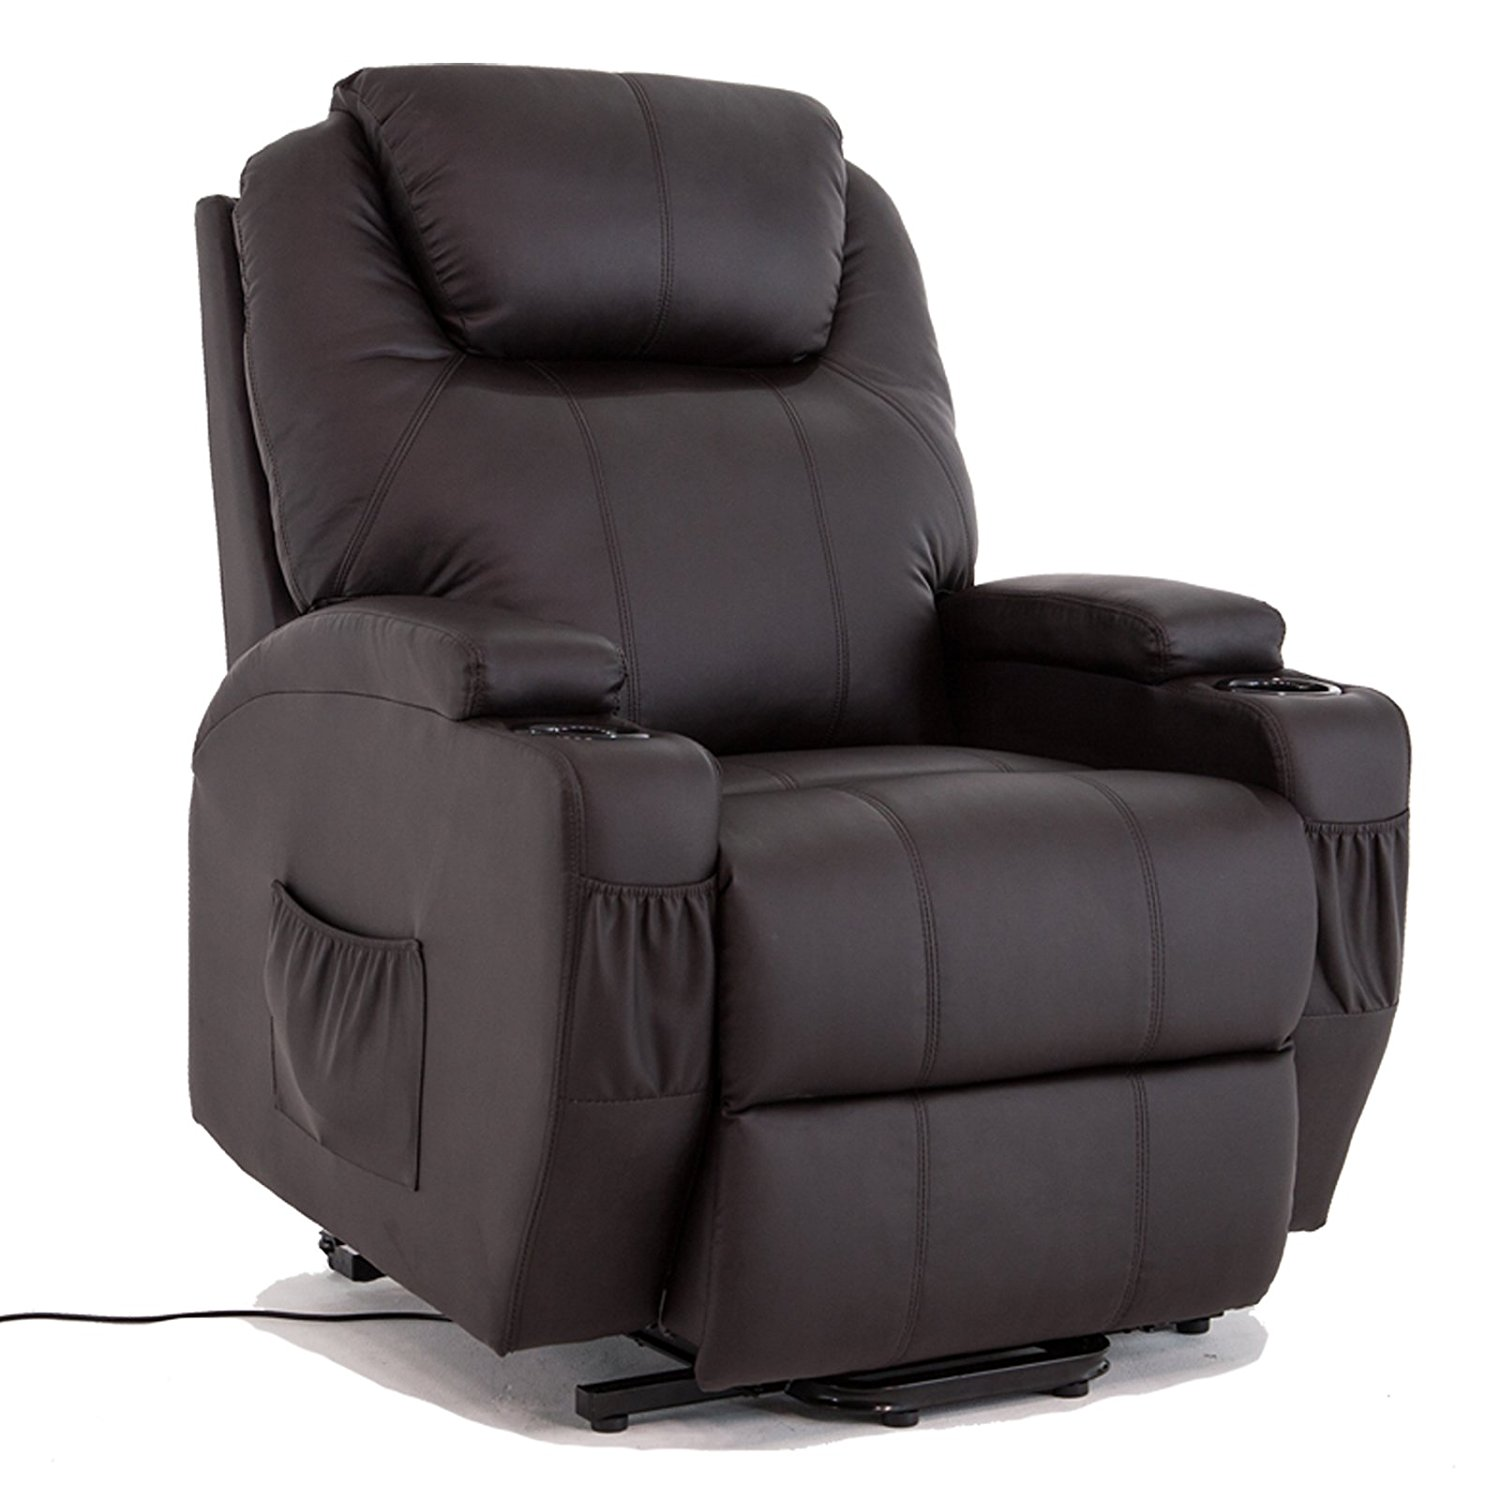 Uenjoy Power Lift Chair Recliner Armchair Real Leather Wall Hugger Lounge Seat Brown  sc 1 st  Walmart : recliner chair lifts - islam-shia.org